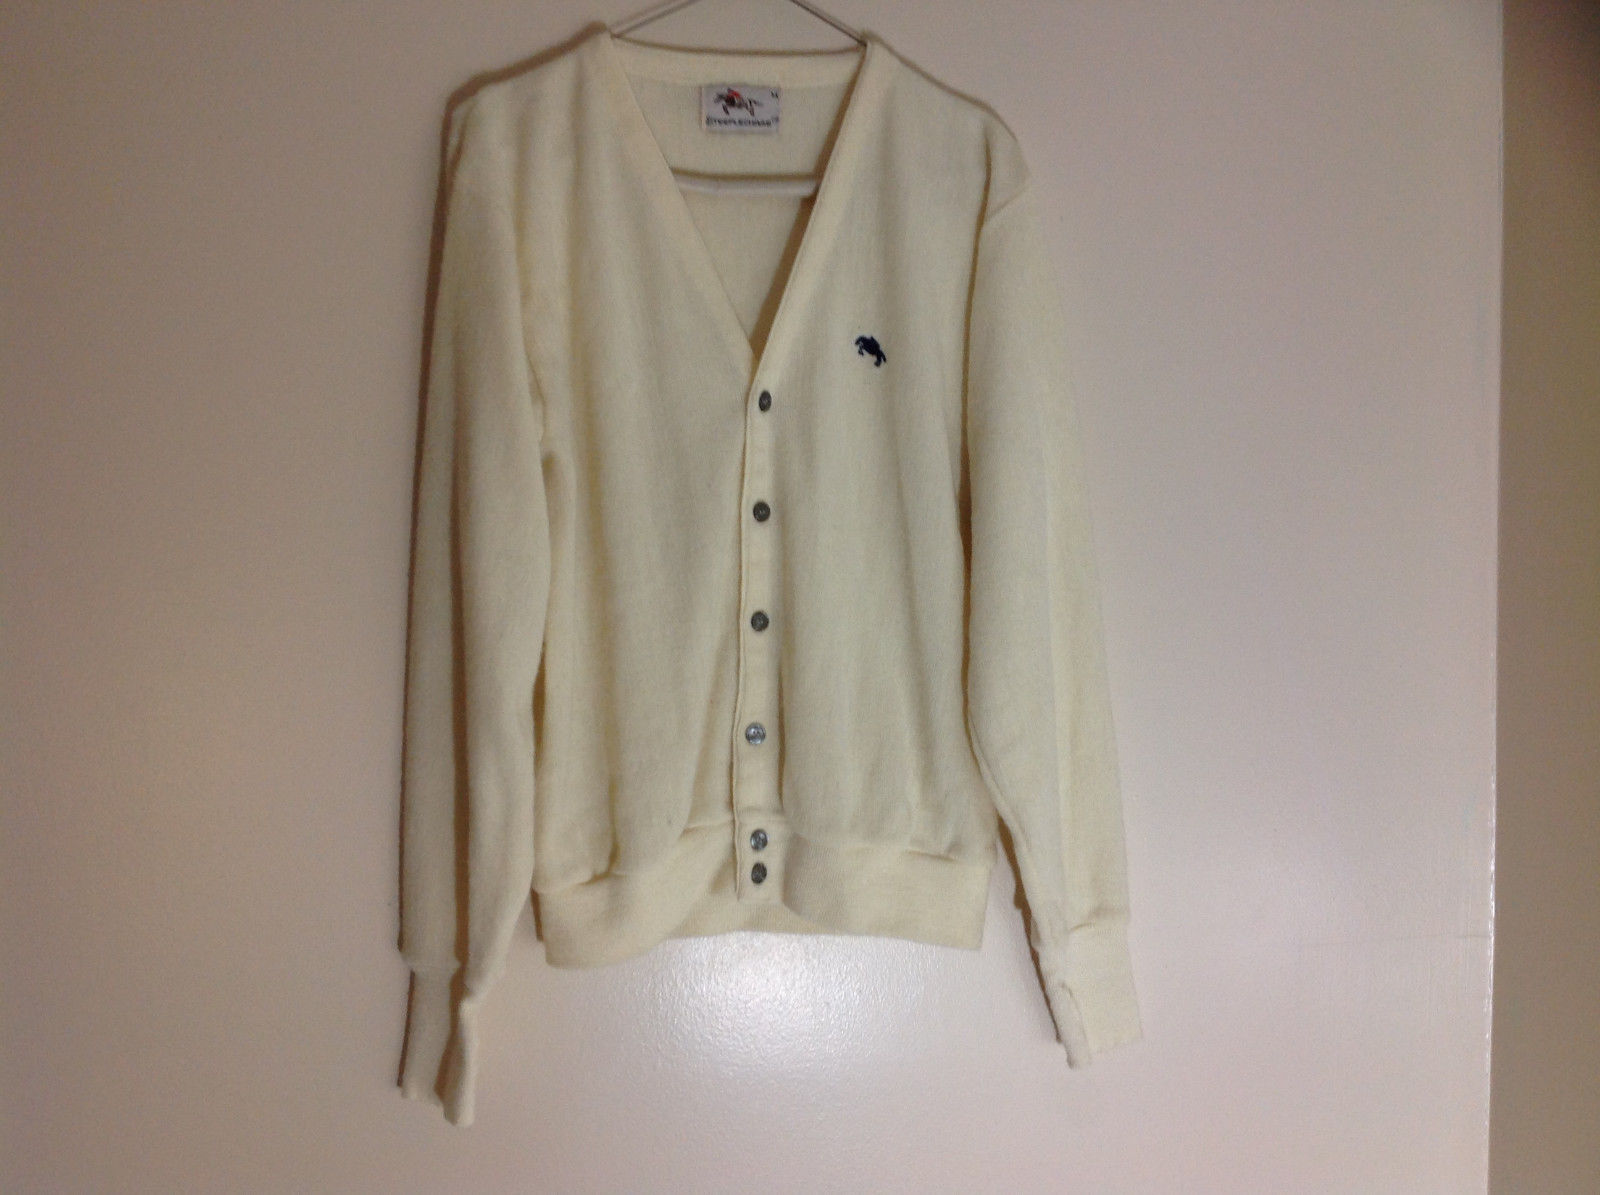 Steeplechase Pale Yellow  Button Up V-Neck Sweater Size Medium